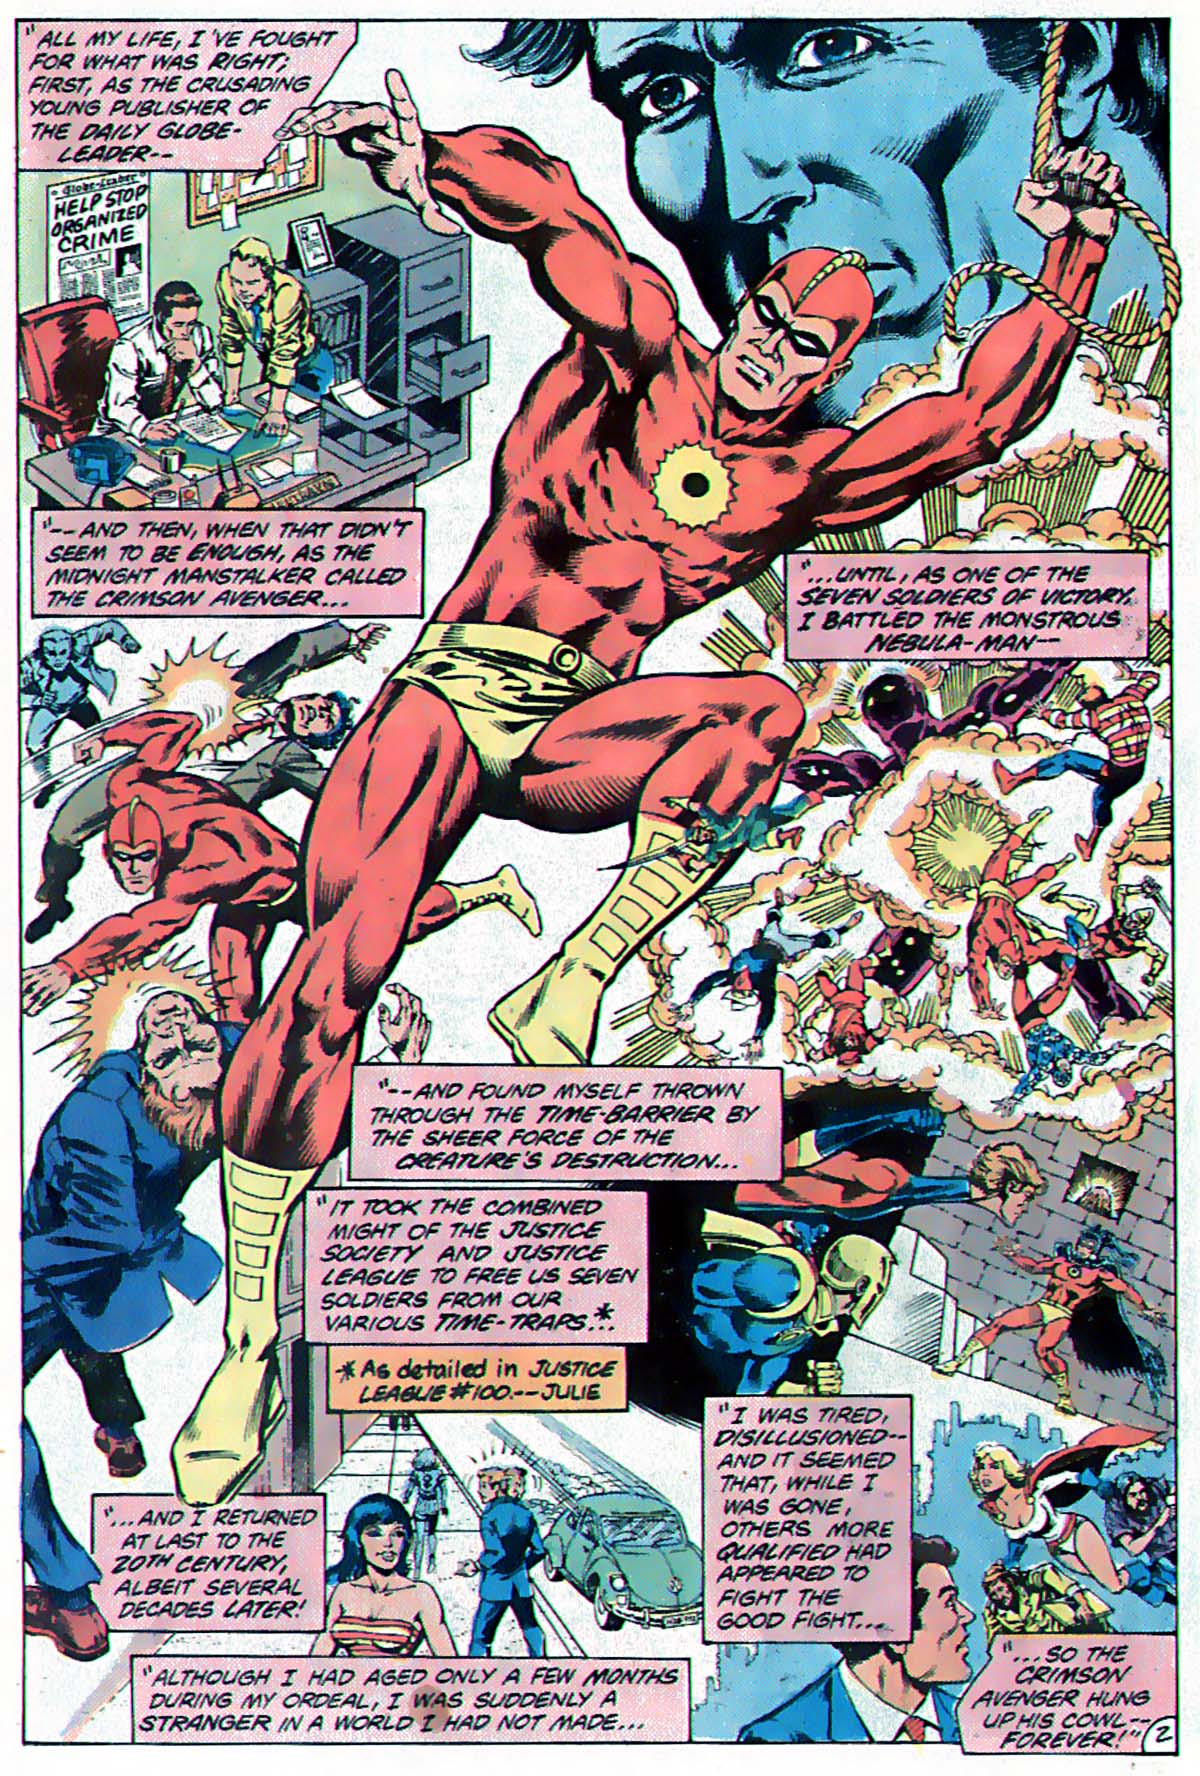 Whatever Happened to... Crimson Avenger! From DC Comics Presents #38, by Lein Wein, Alex Saviuk, and Dennis Jensen.